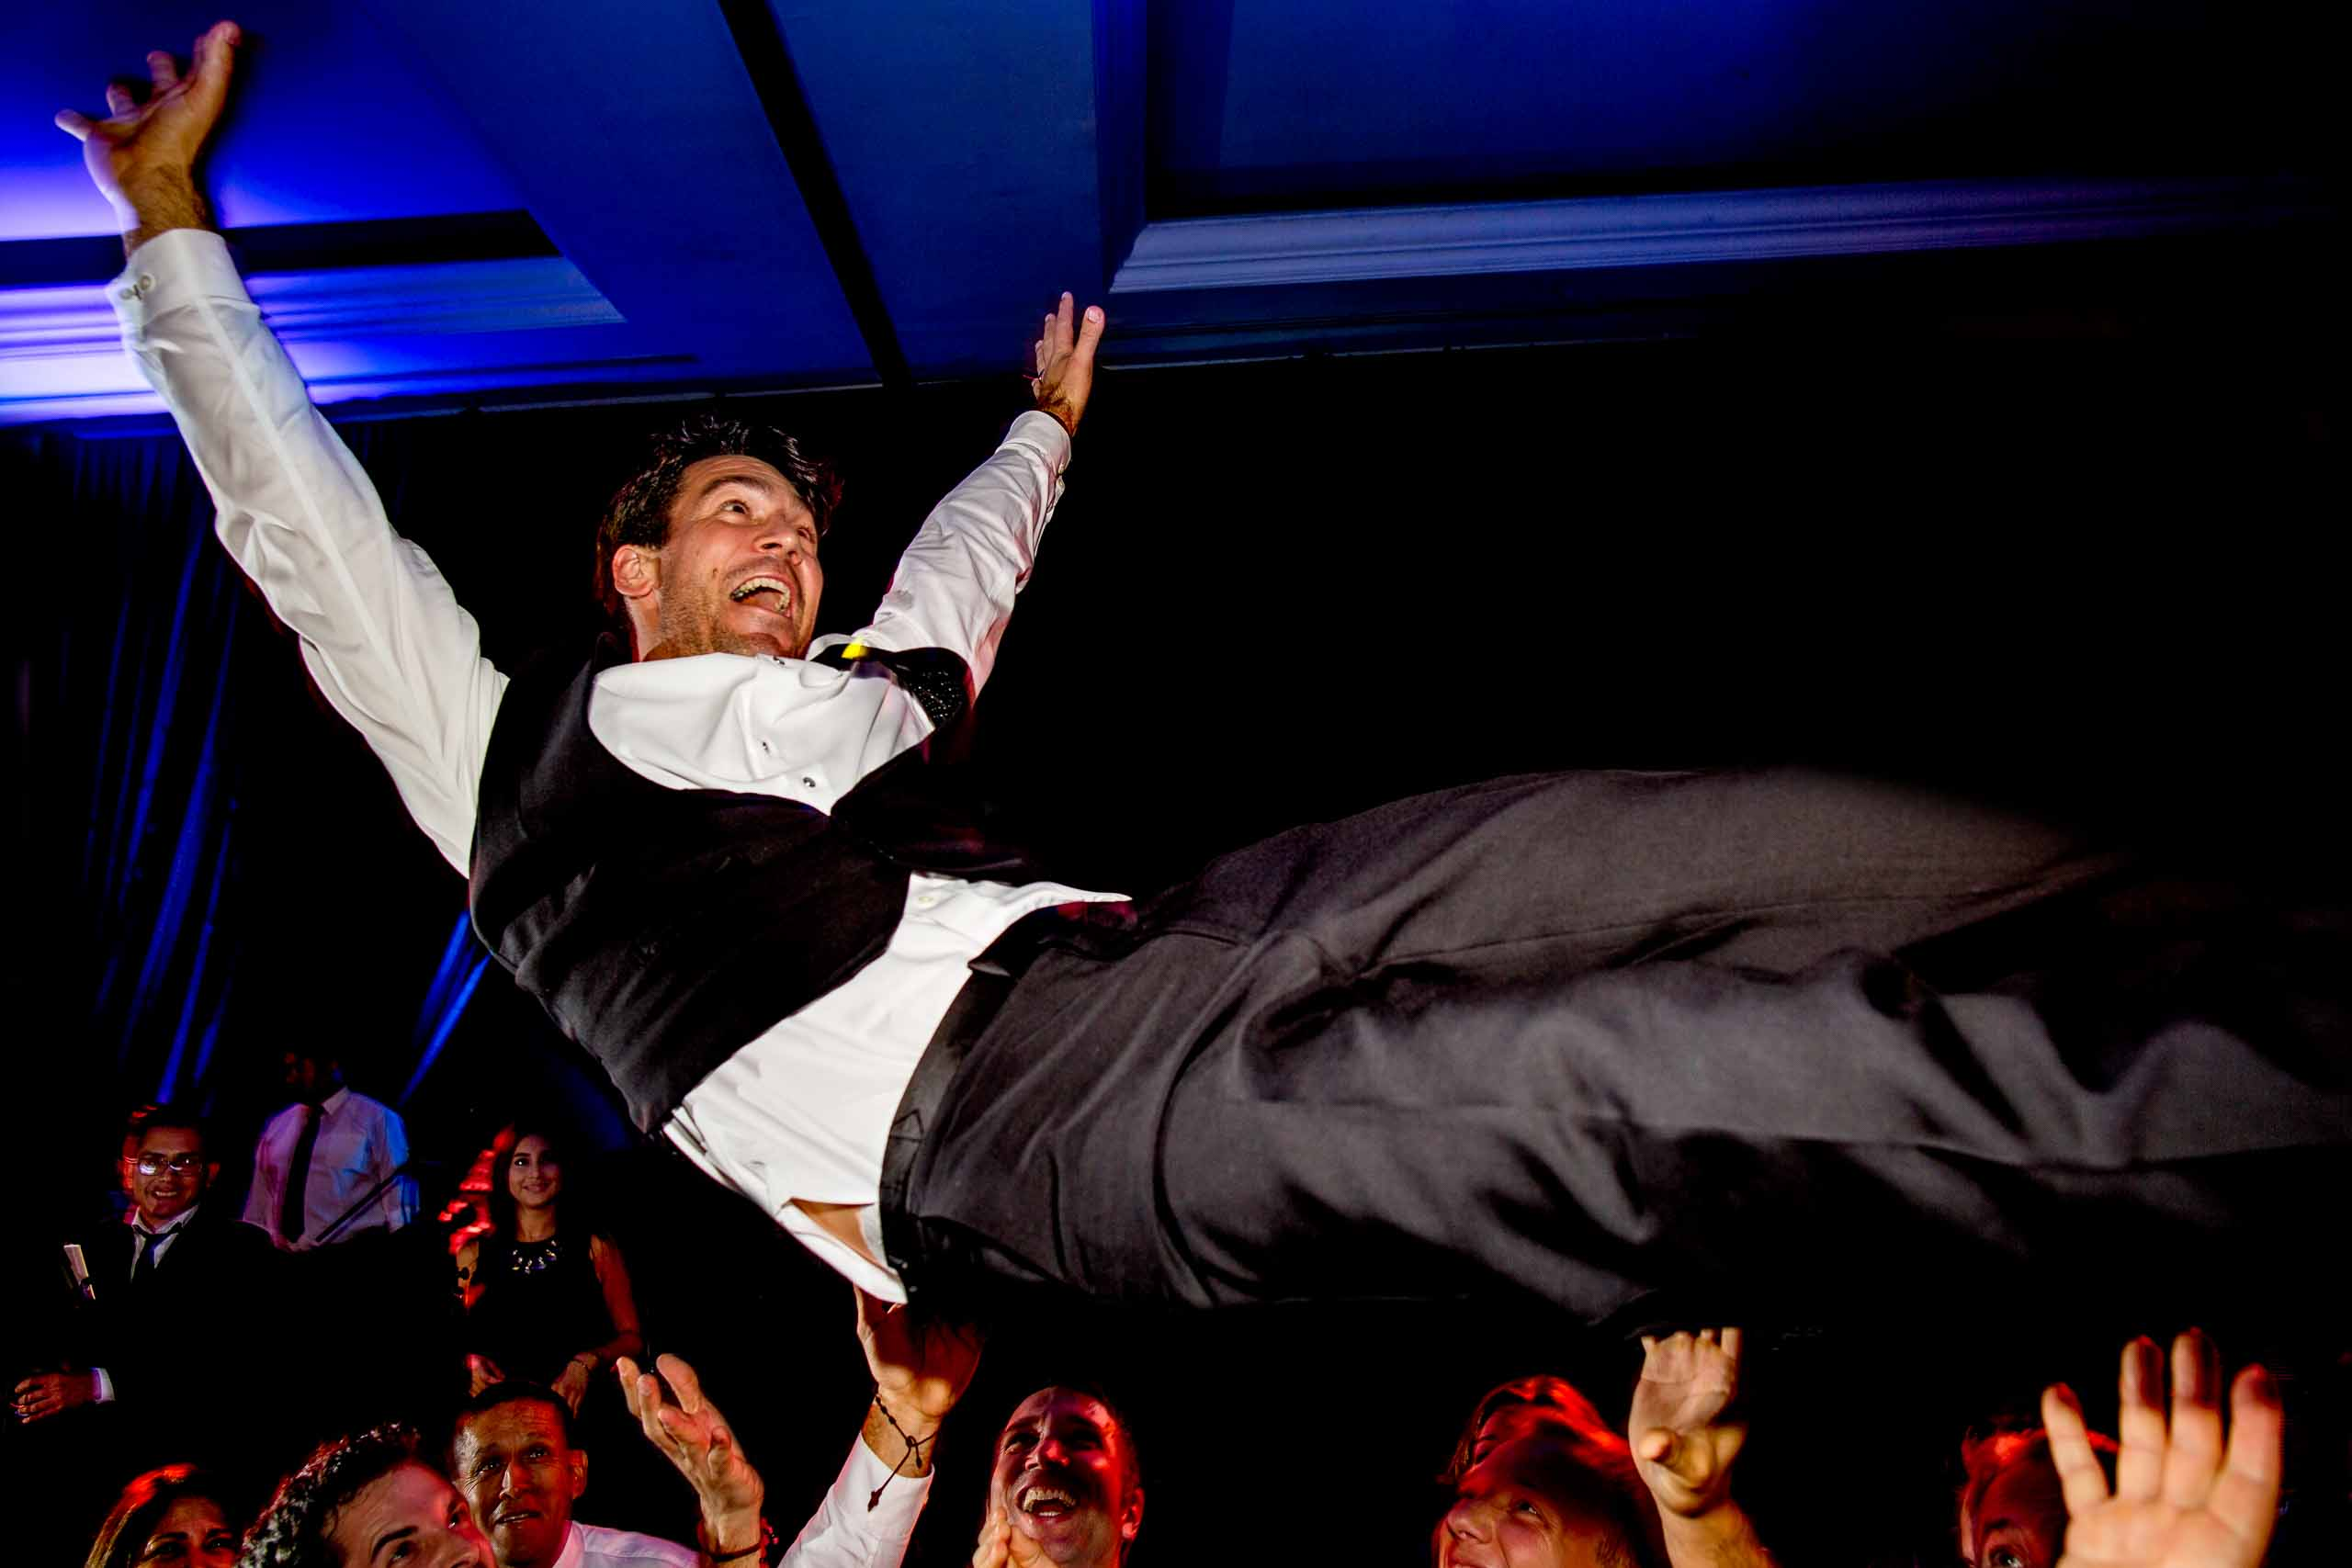 Groom flying high over the guests on the dance floor during their Lima Peru wedding.